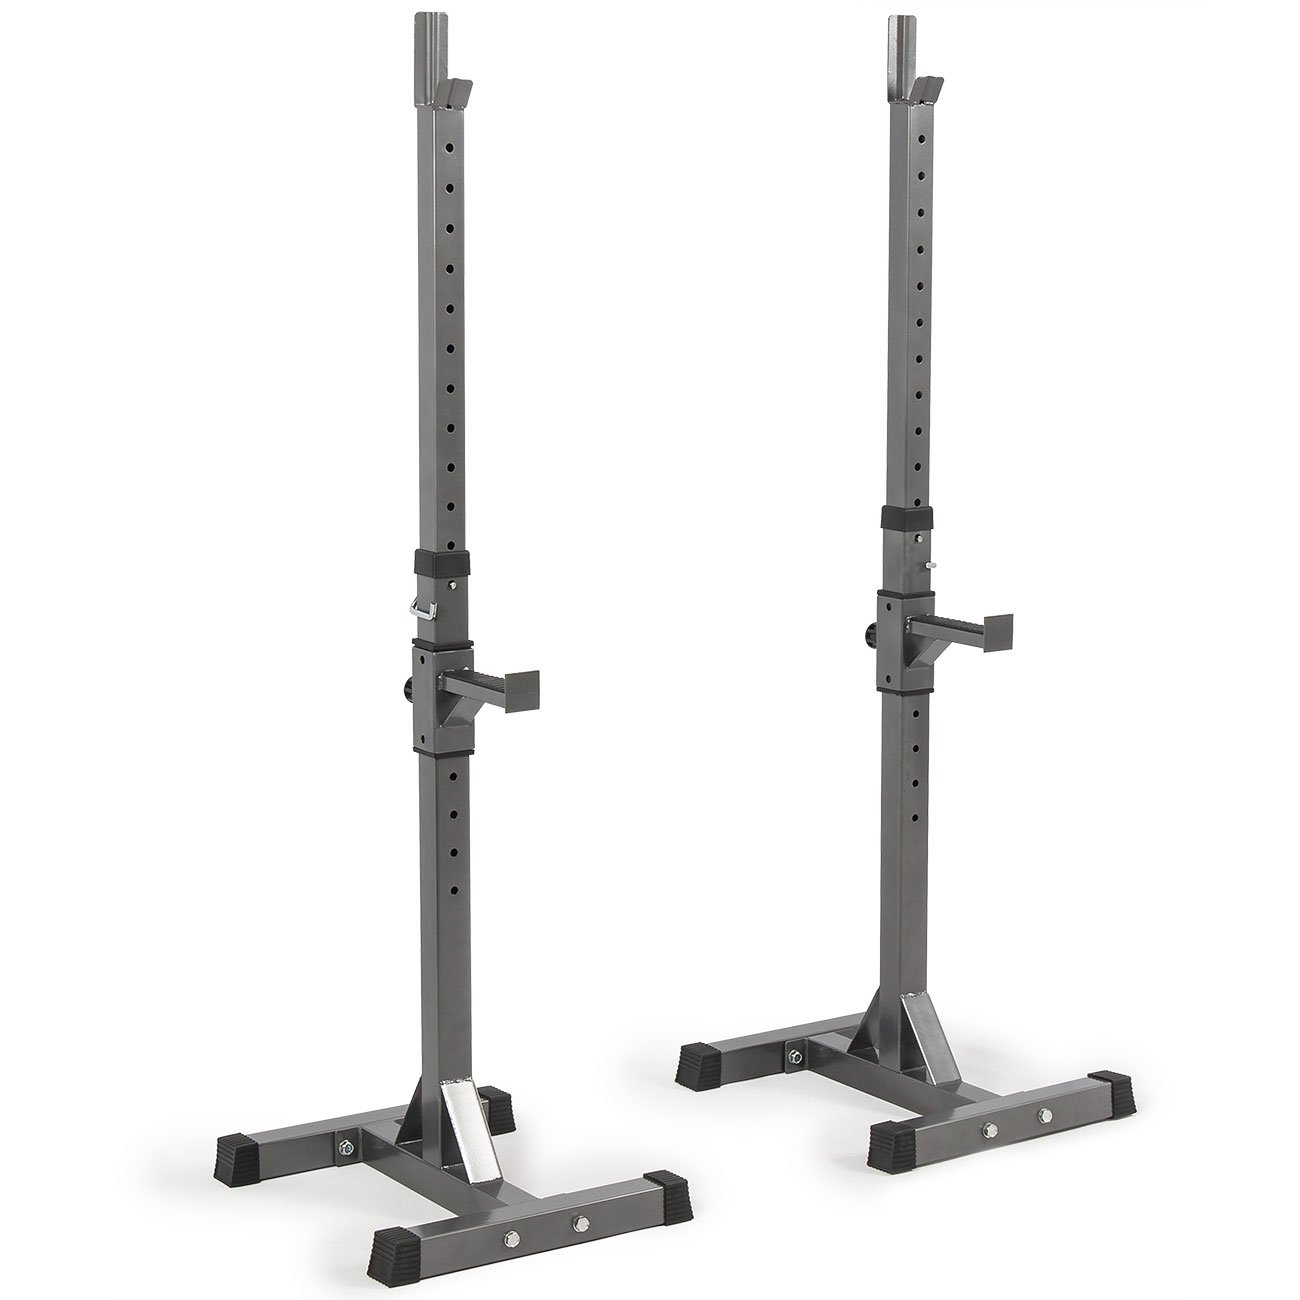 Akonza 2PCS Adjustable Rack Solid Steel Standard Squat Barball Free Press Bench Equipment Training Cross Fit by Akonza